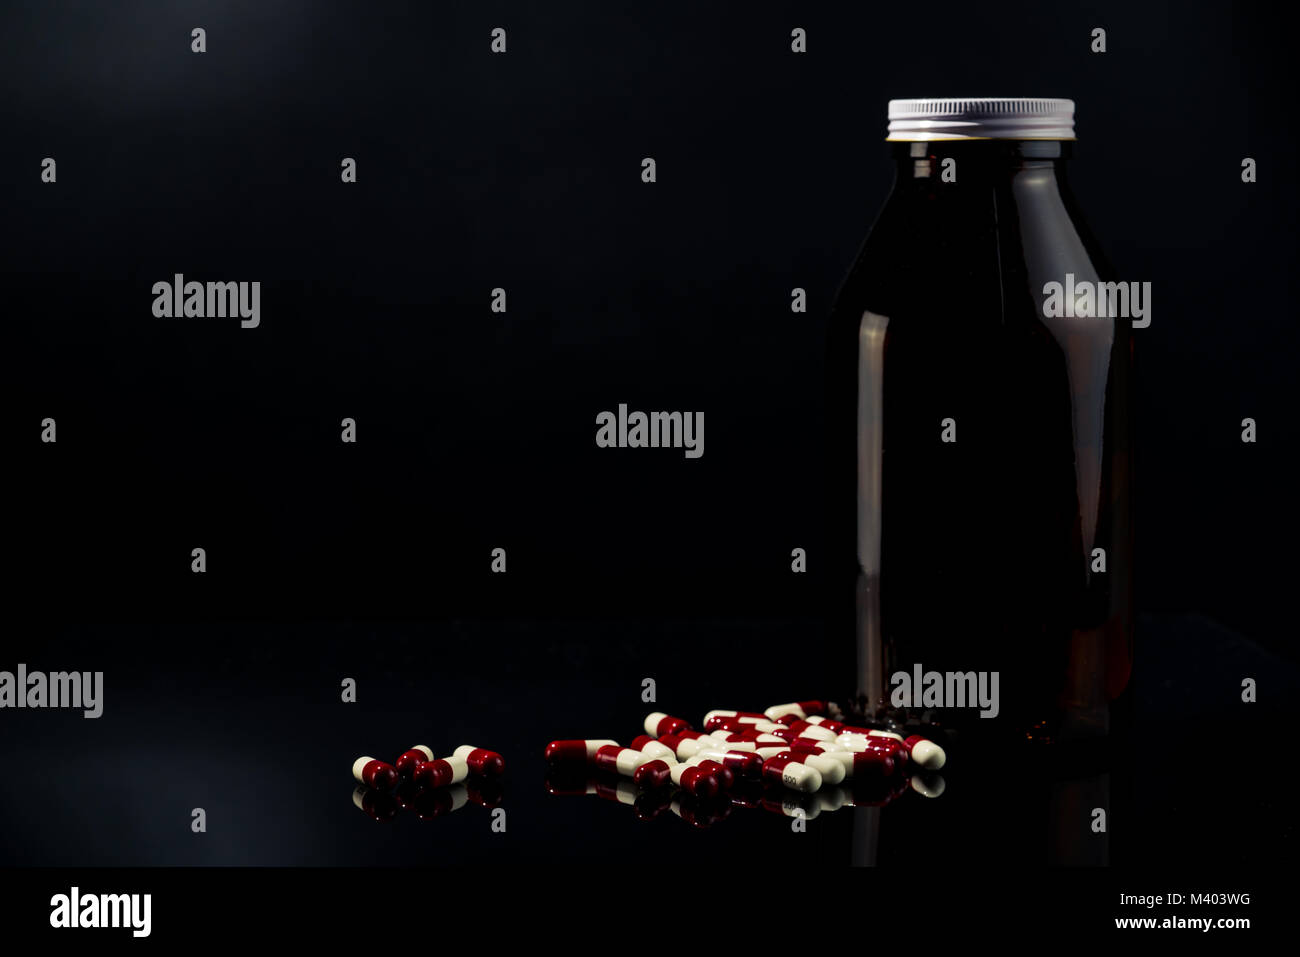 Red, white antimicrobial capsule pills and amber glass bottle on dark background with blank label and copy space Stock Photo